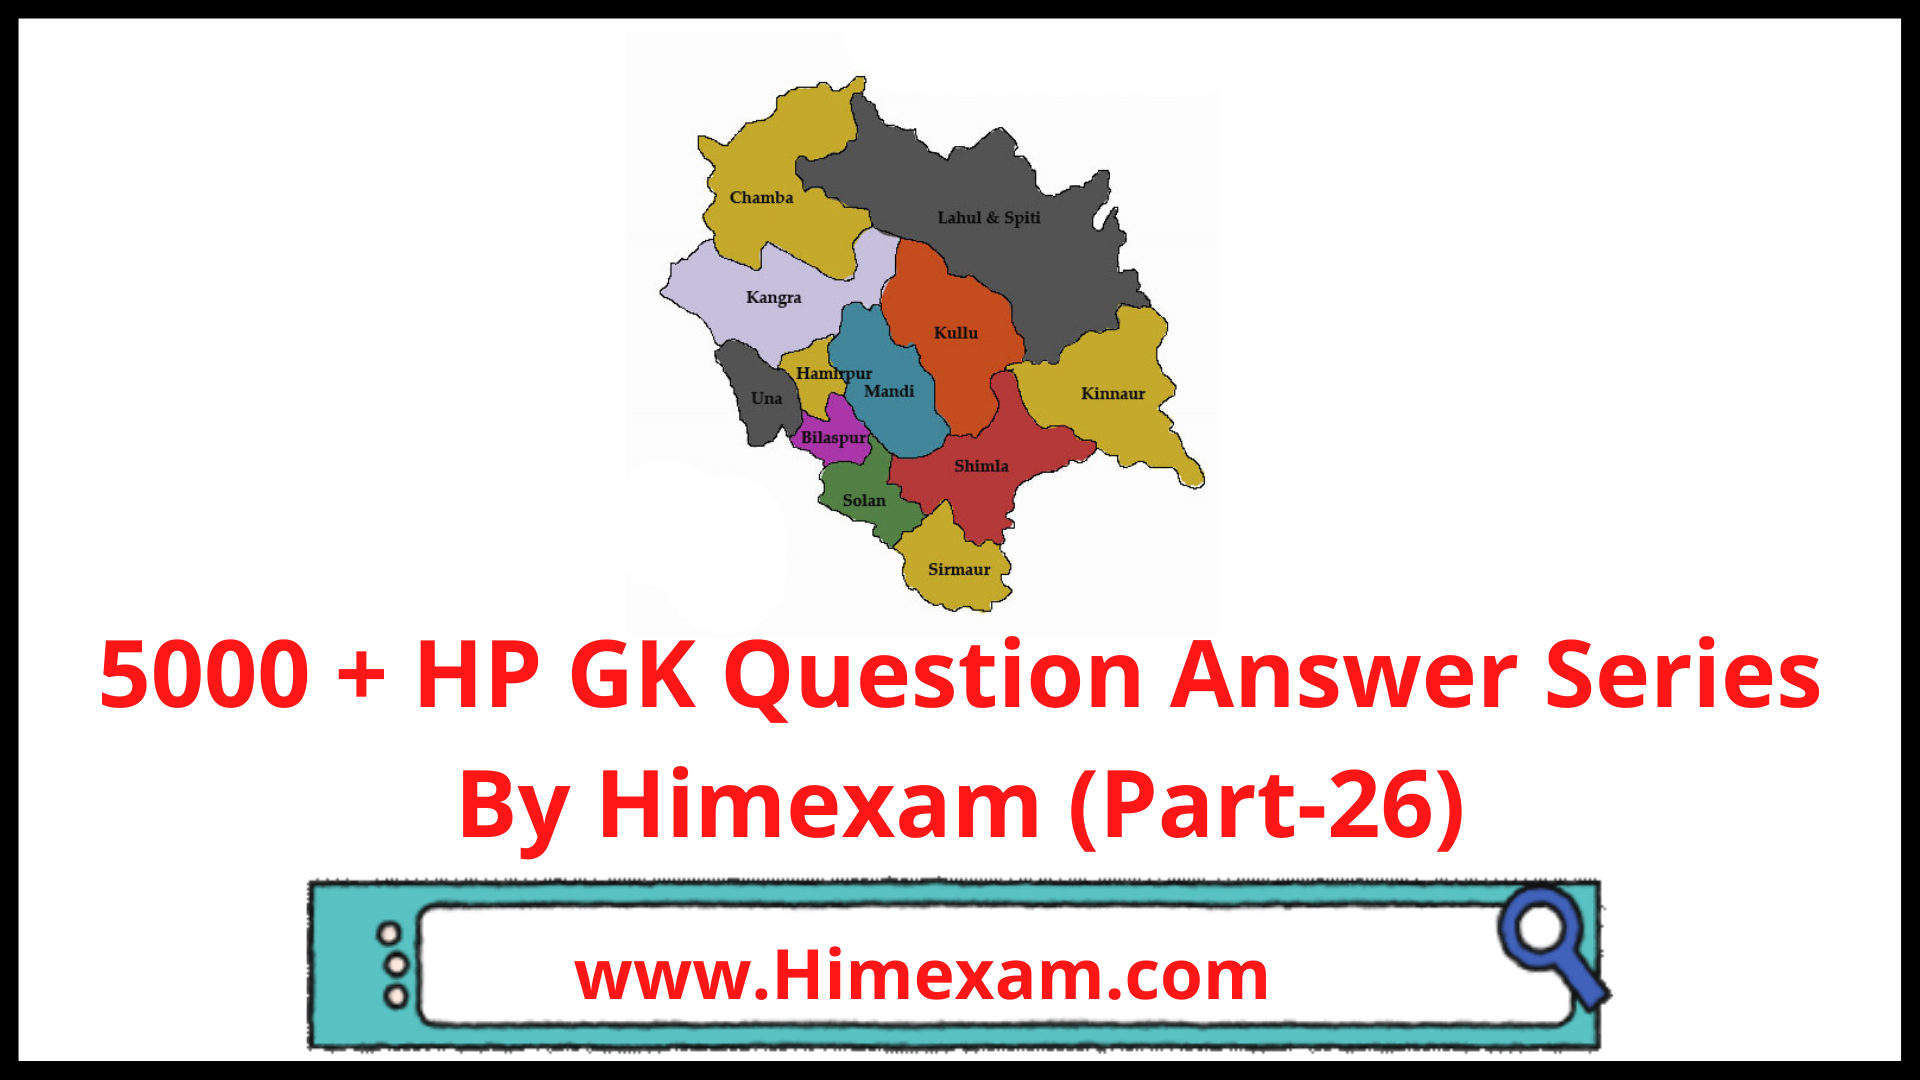 5000 + HP GK Question Answer Series By Himexam (Part-26)